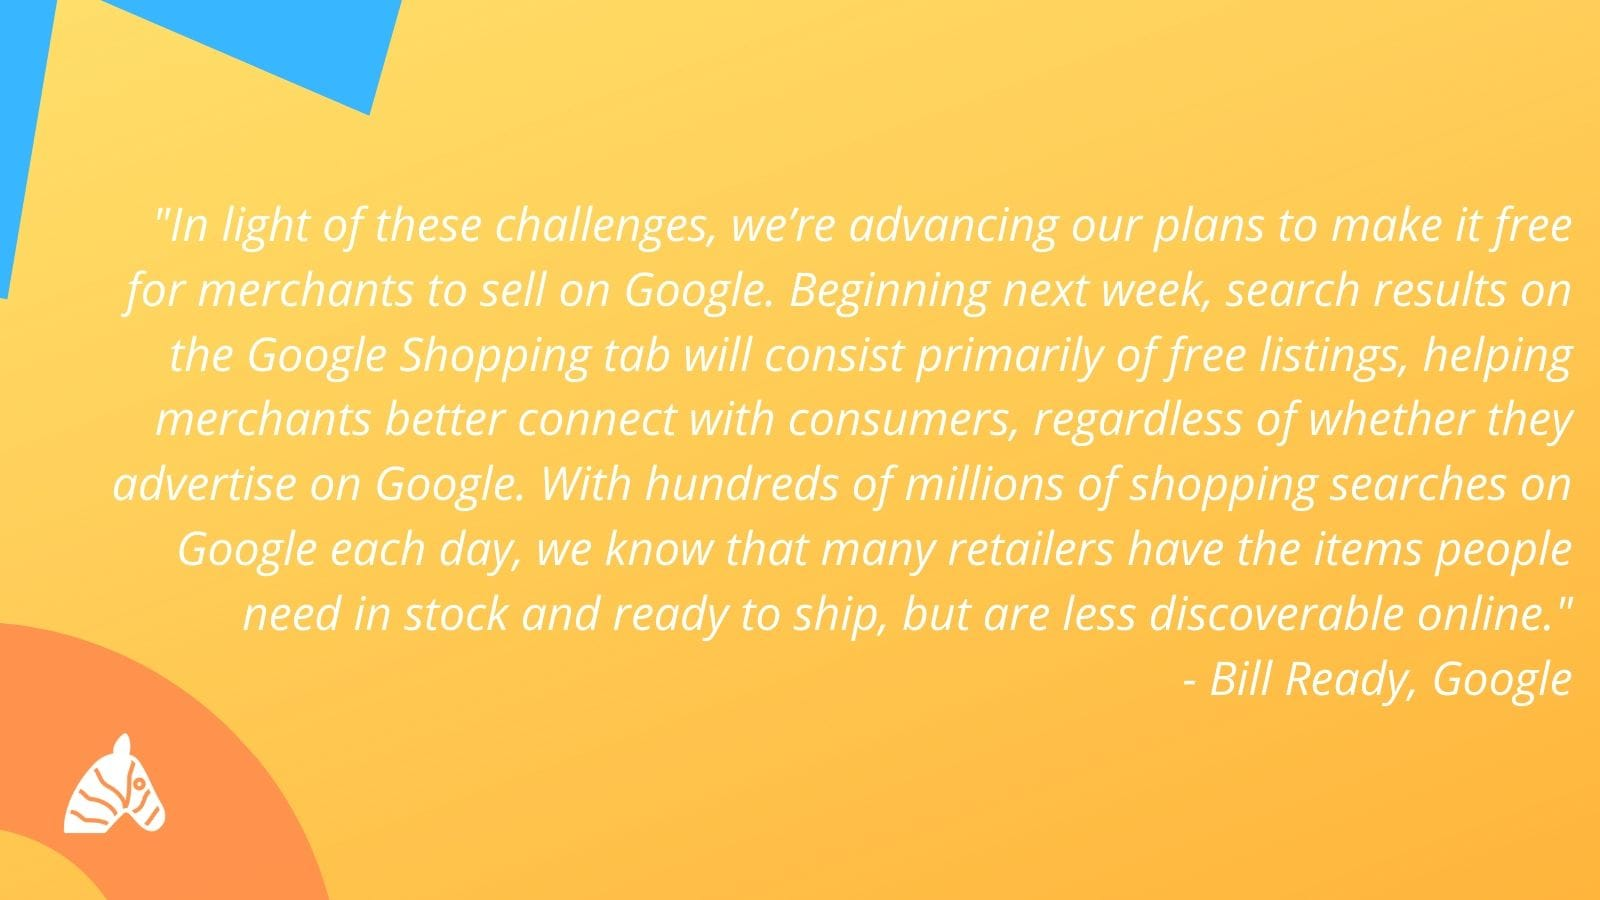 Google shopping statement from Bill Ready